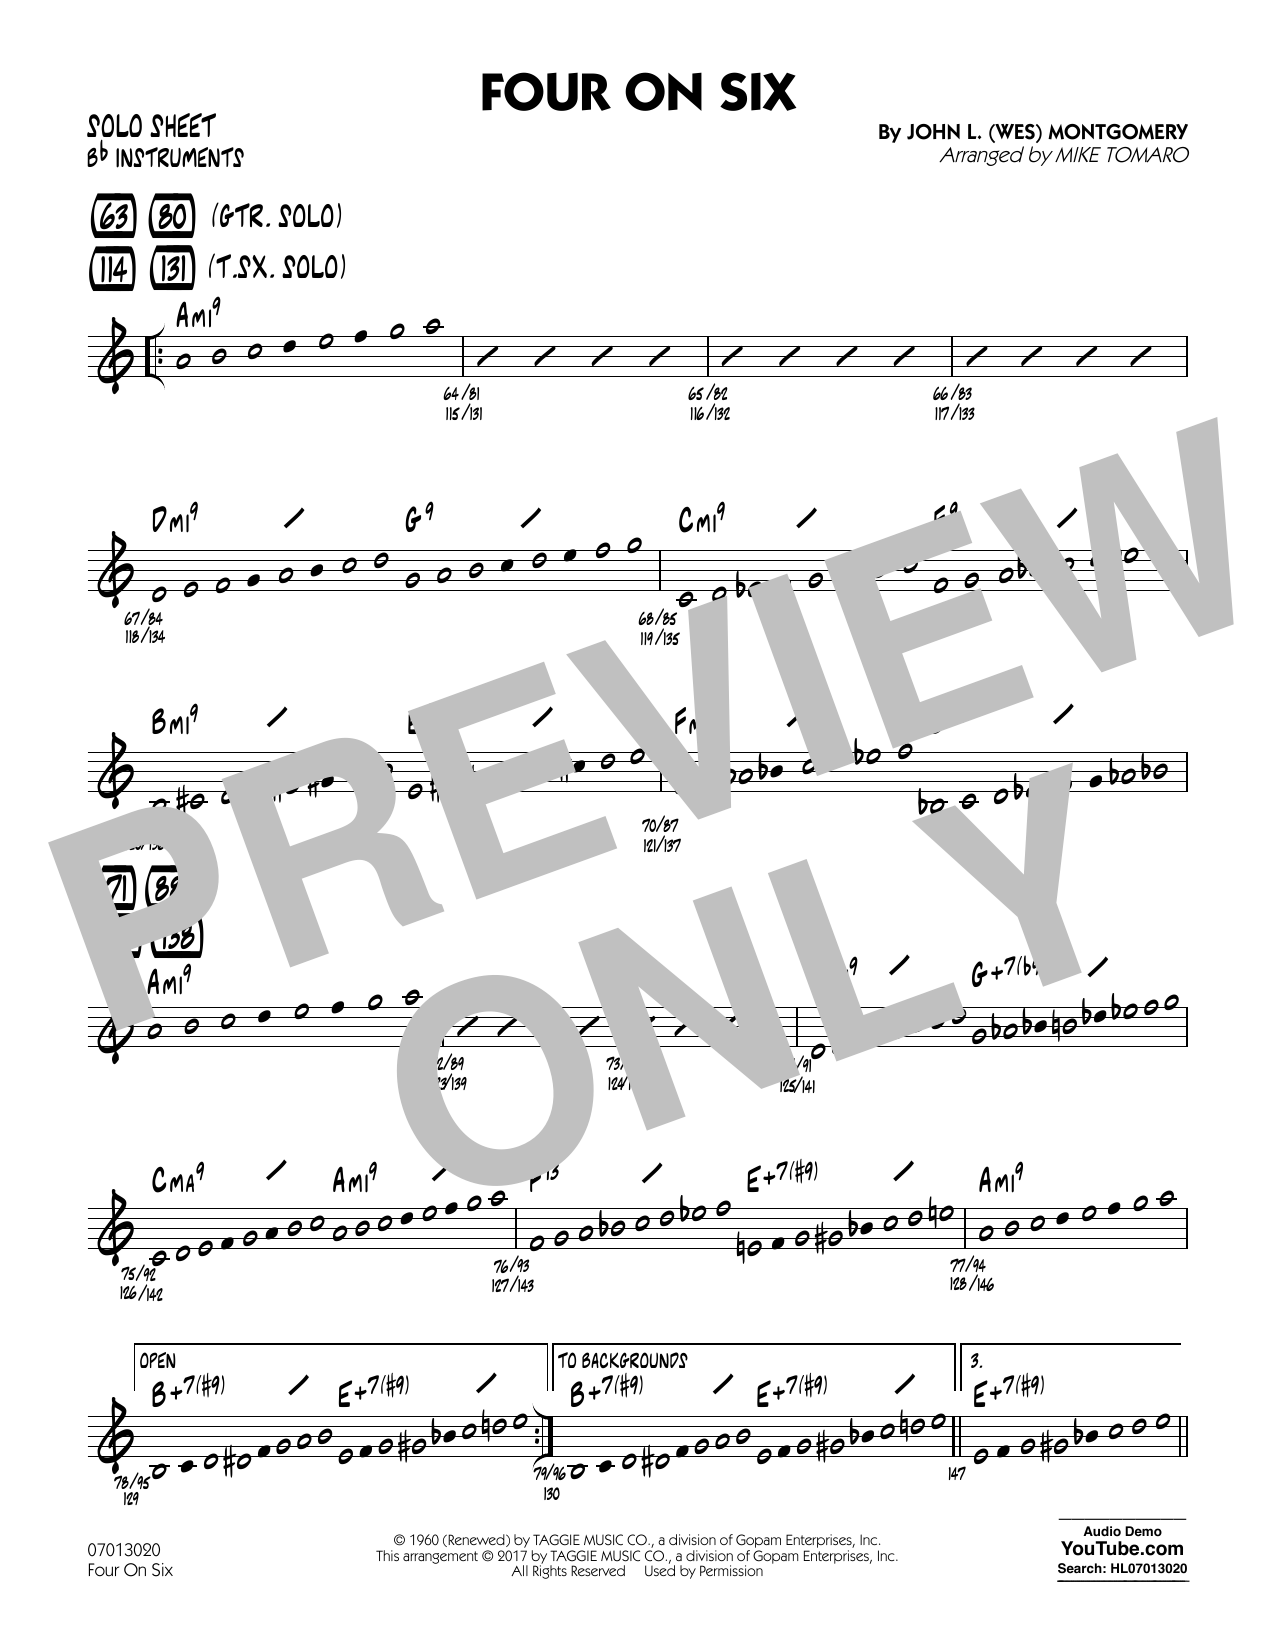 Mike Tomaro Four on Six - Bb Solo Sheet sheet music notes and chords. Download Printable PDF.